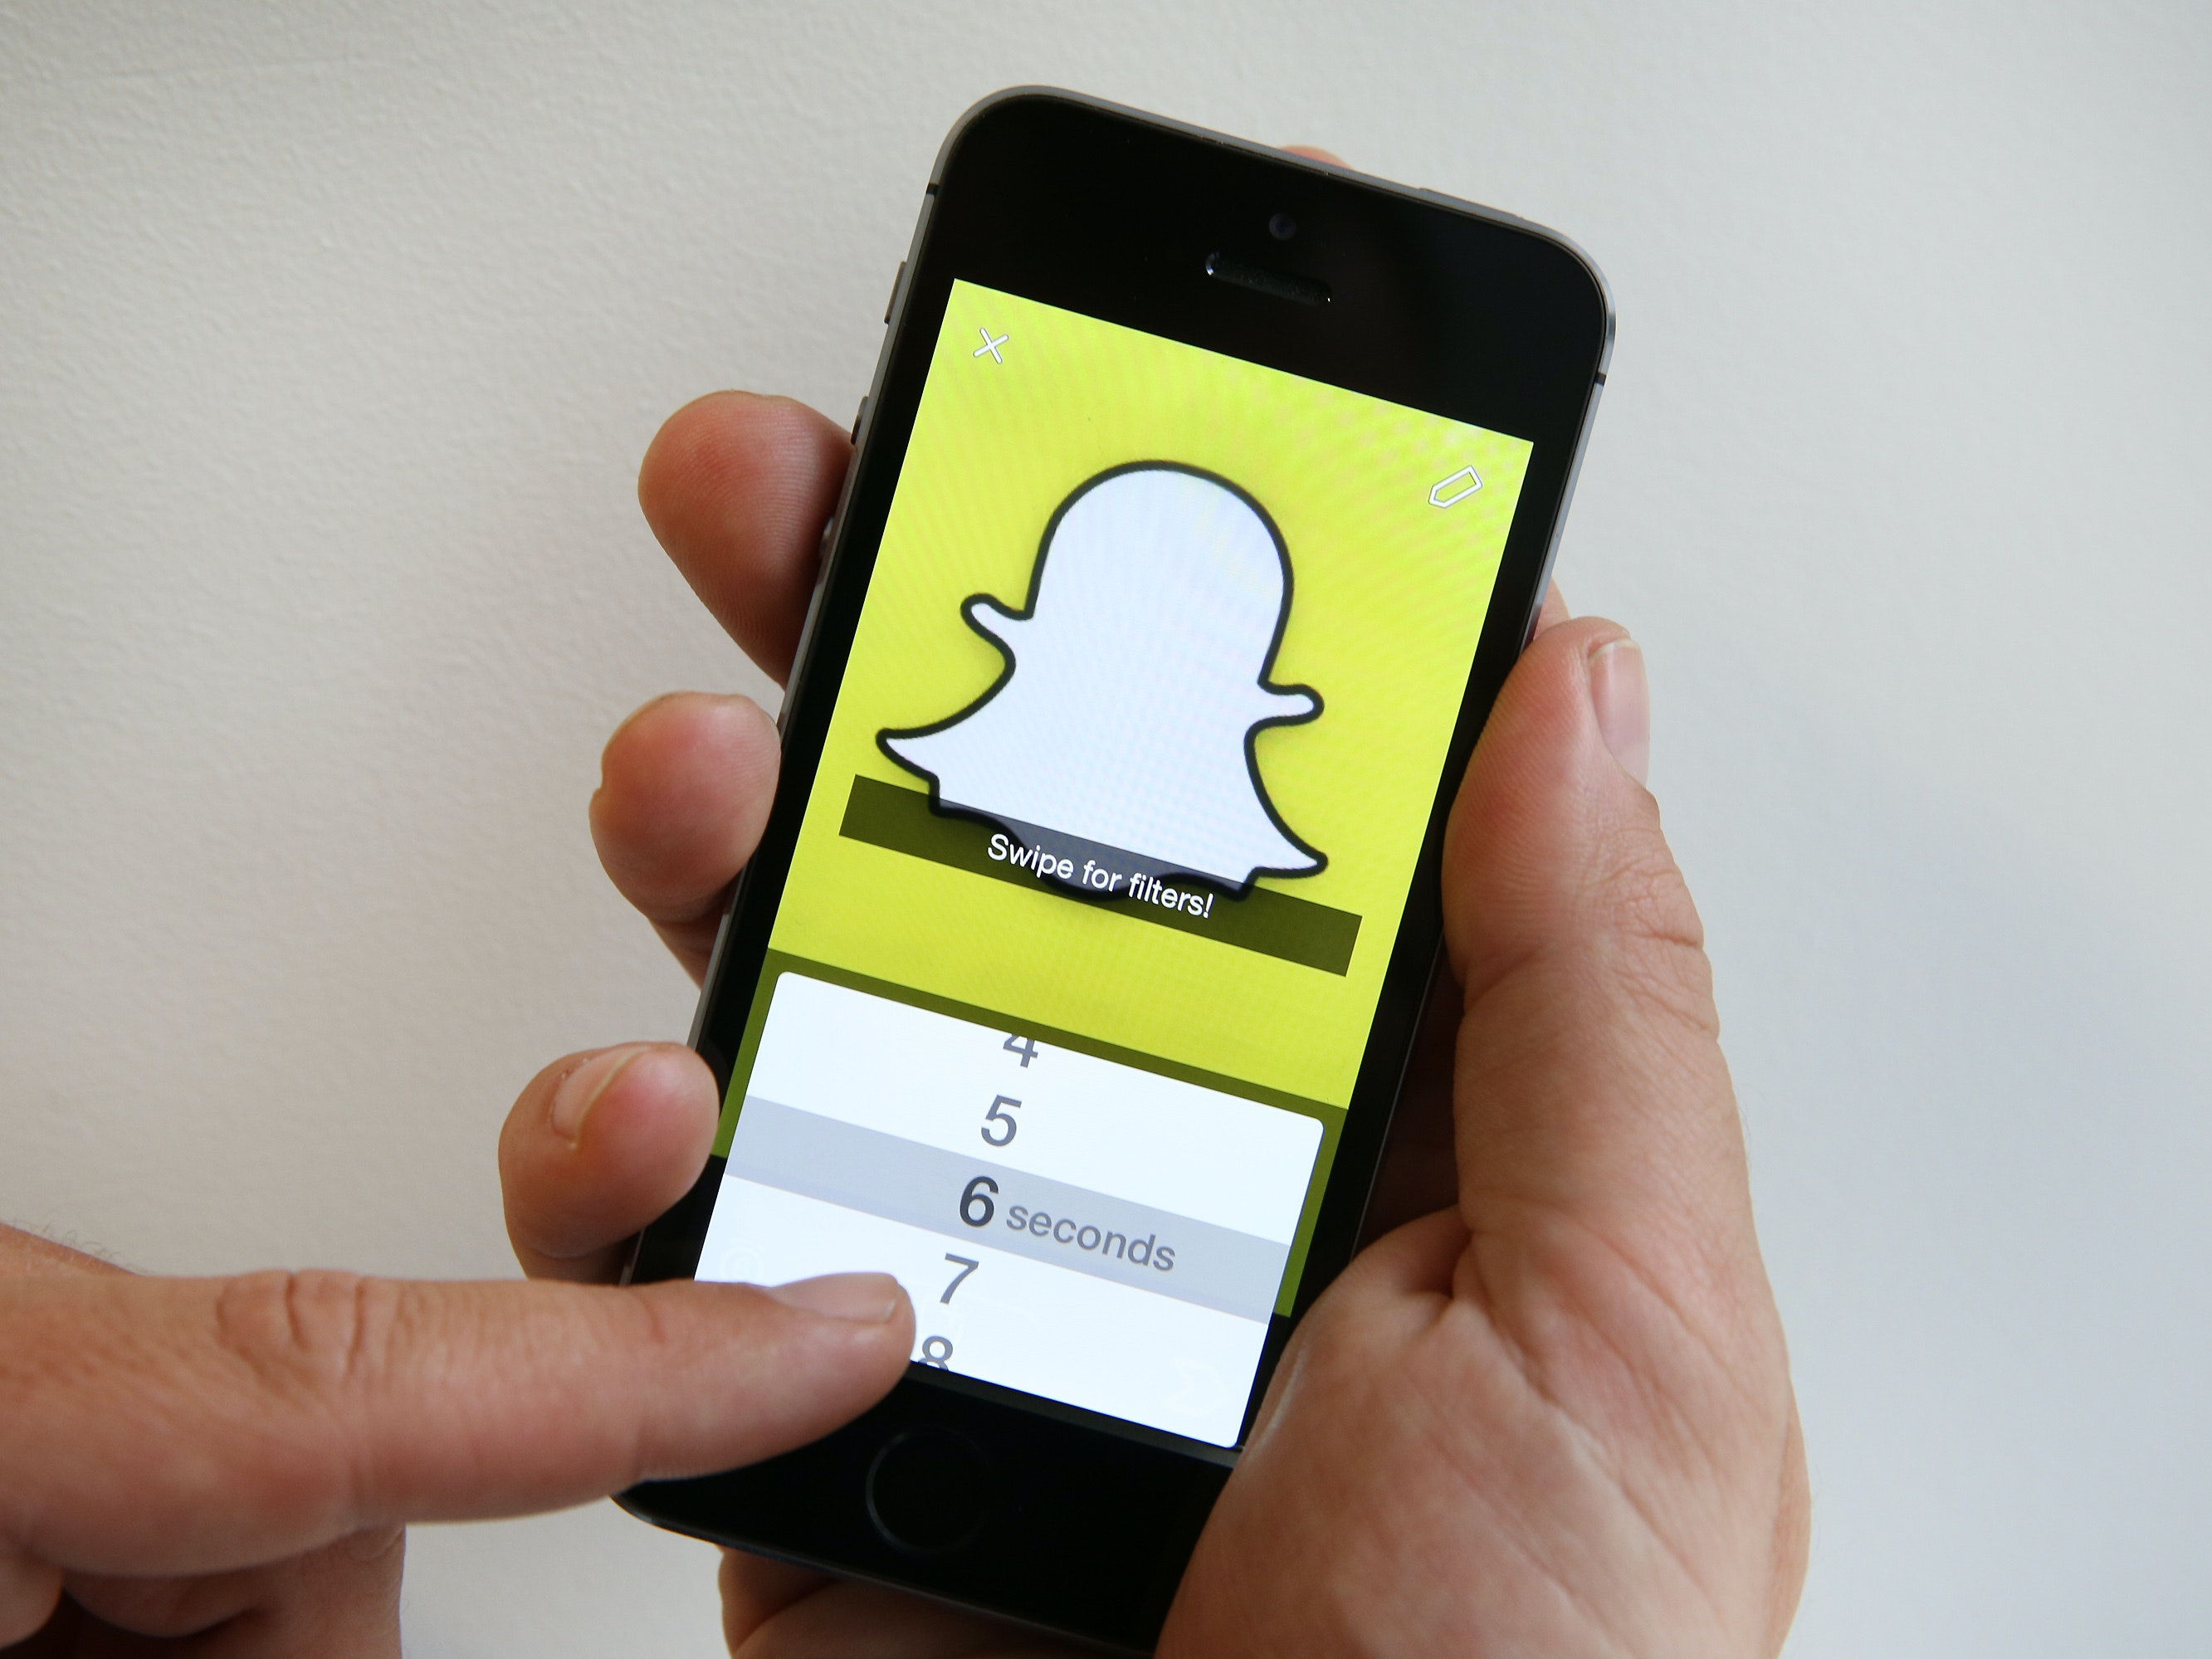 Snapchat Sued for NSFW Discover Content on Kids' Phones